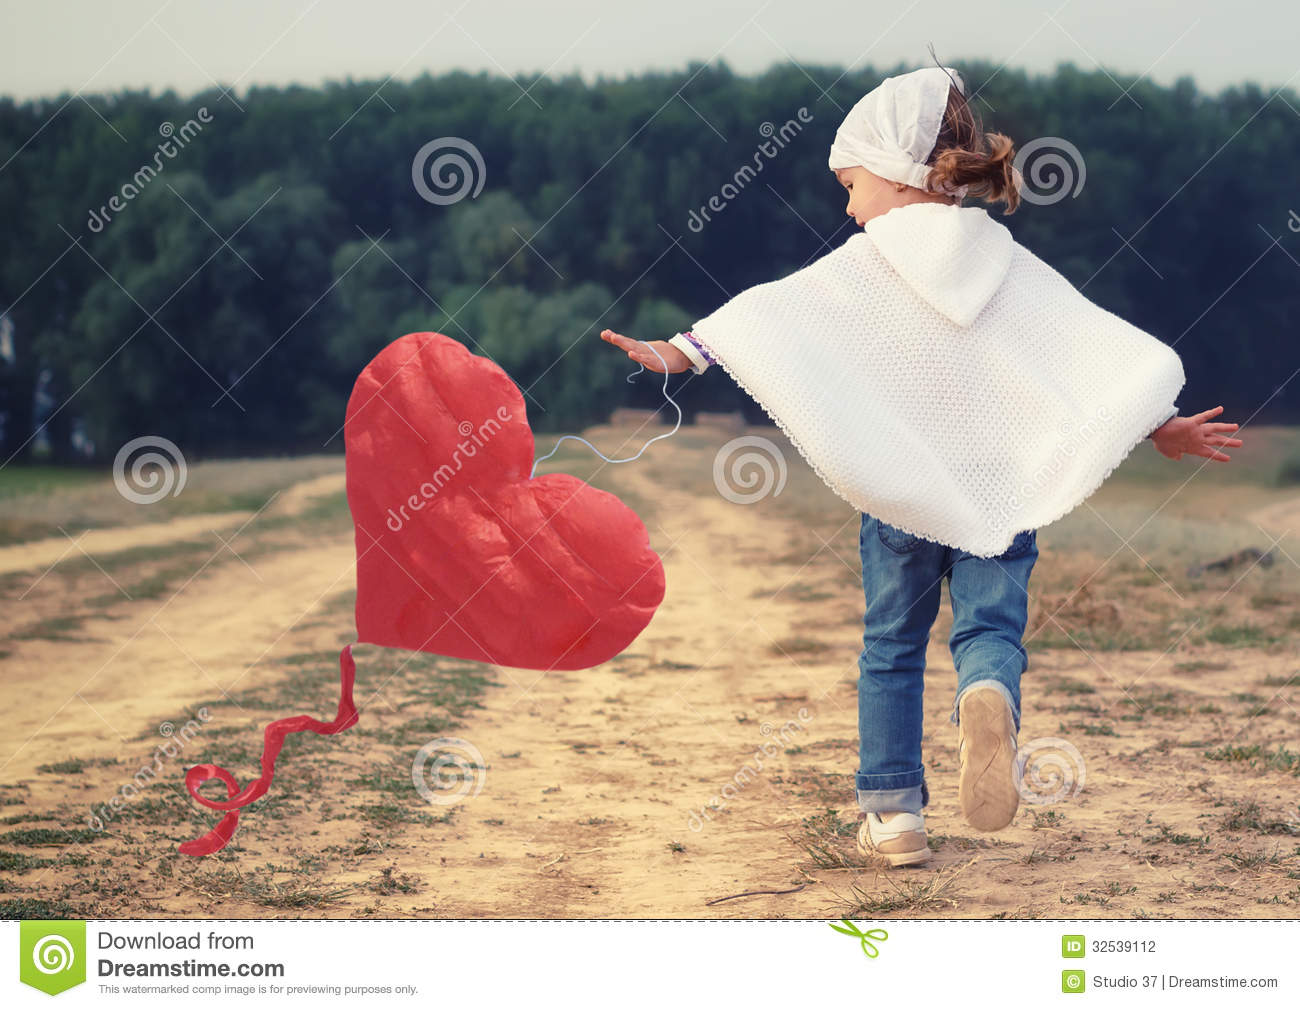 Kid Girl Playing With A Red Heart Kite Stock Photo - Image of ...